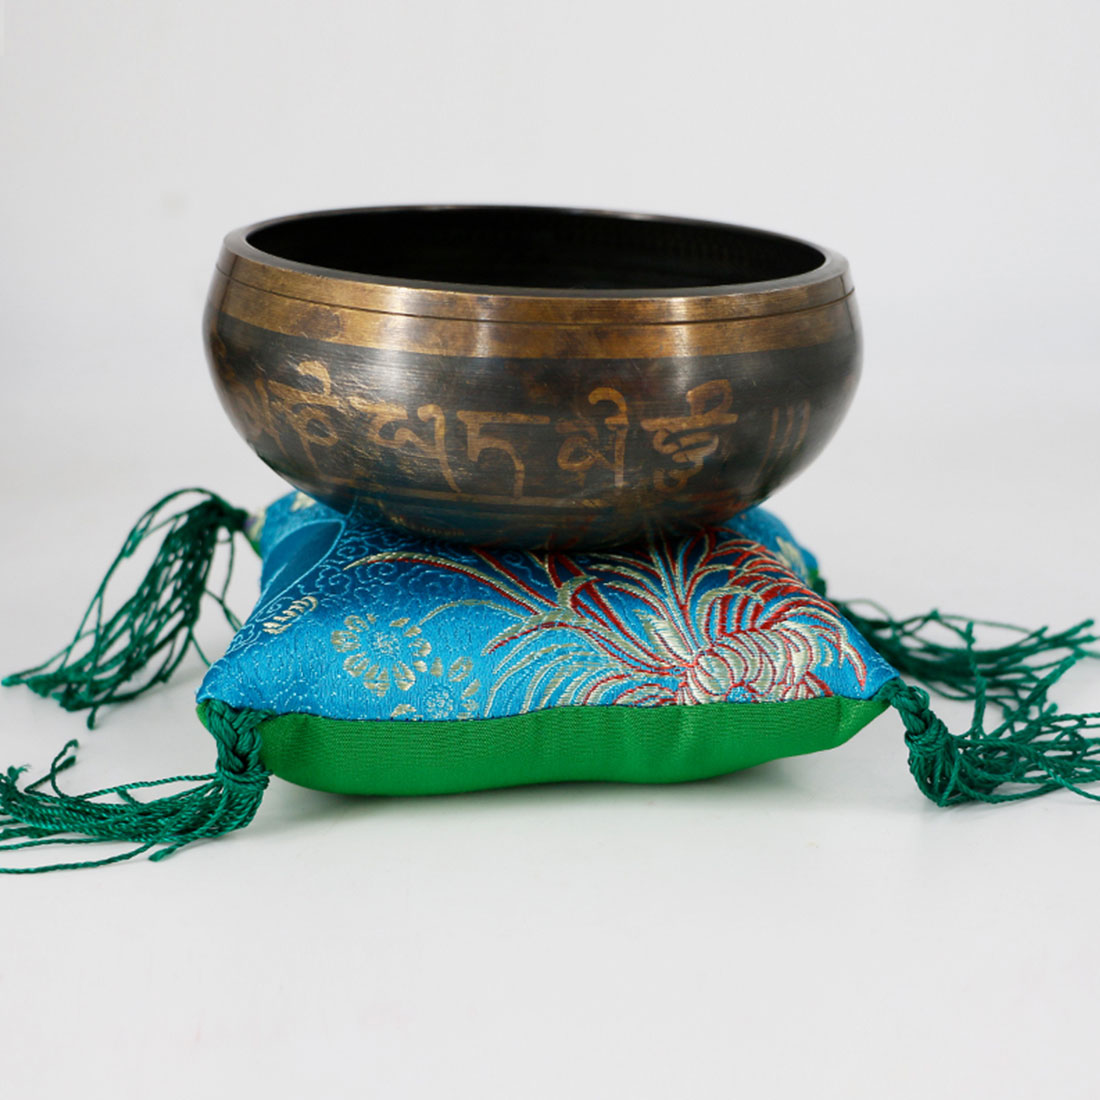 Tibetan Singing Bowl (8-17.5 cm) 2